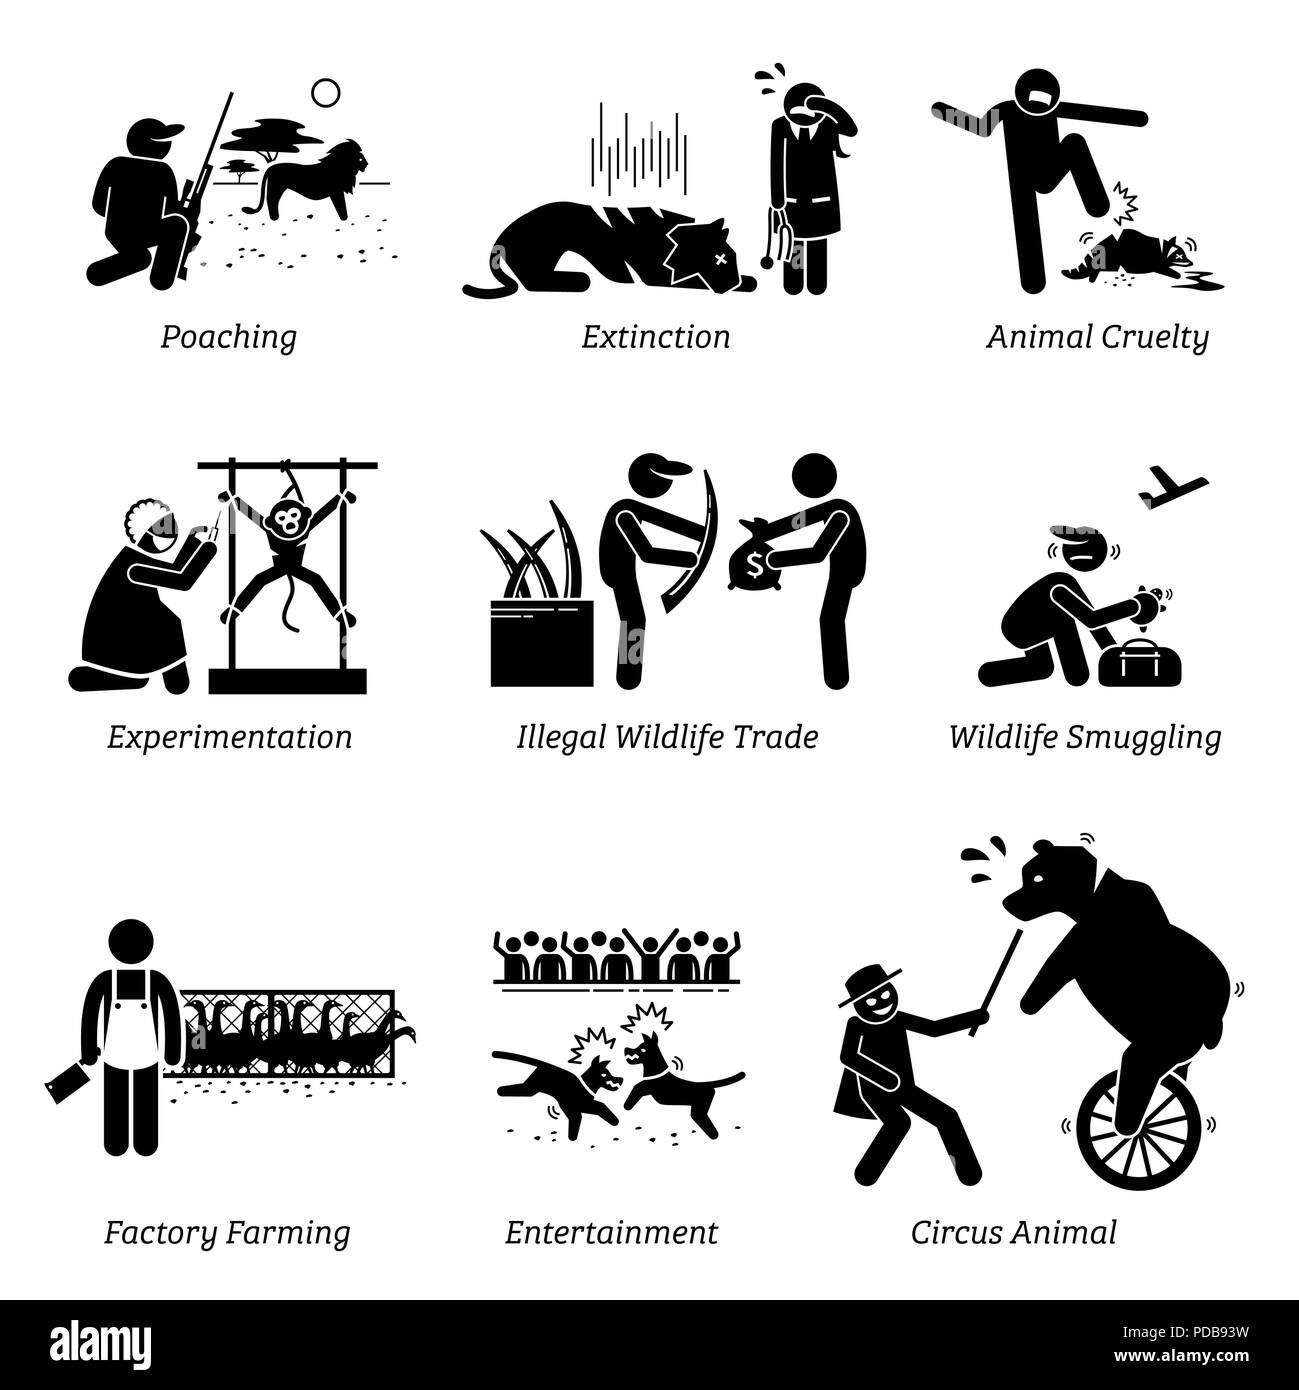 Animal Rights and Issues Stick Figure Pictogram Icons. - Stock Vector